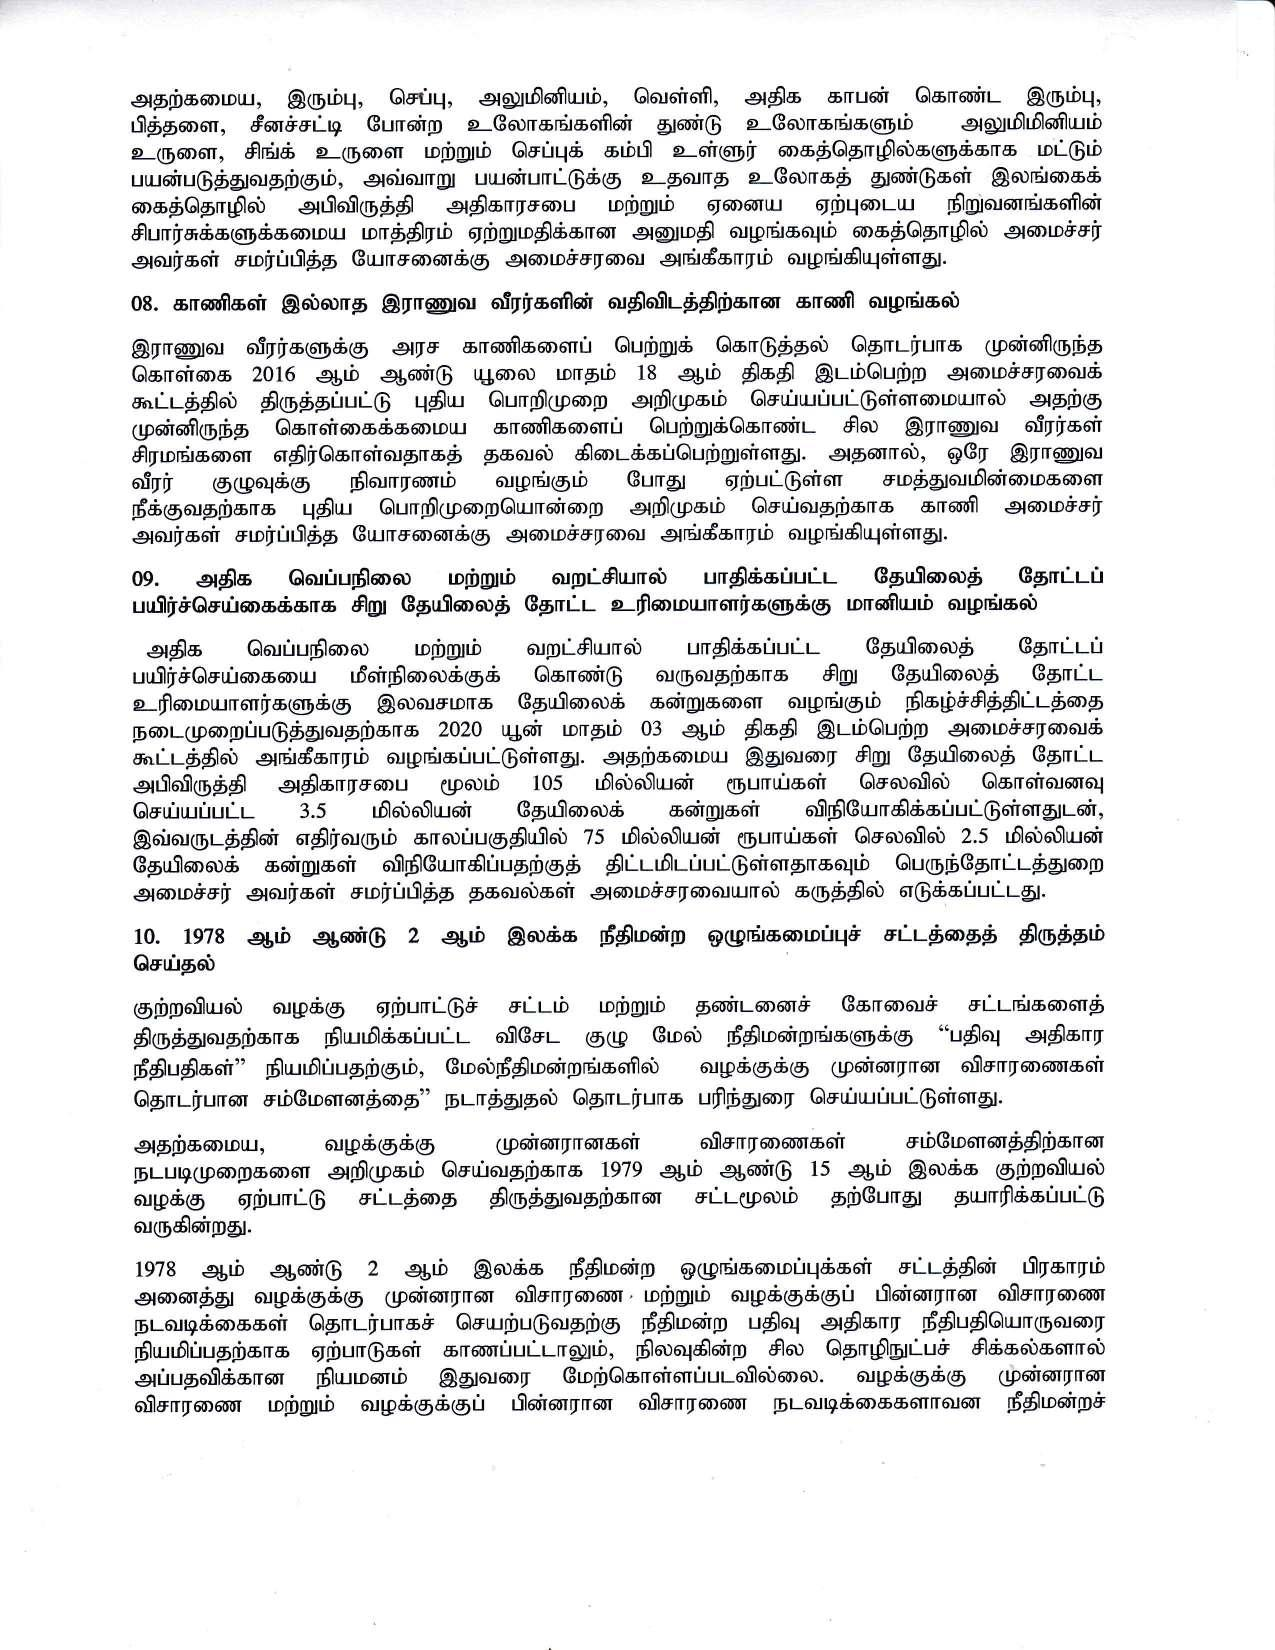 Cabinet Decsion on 09.11.2020 Tamil page 004